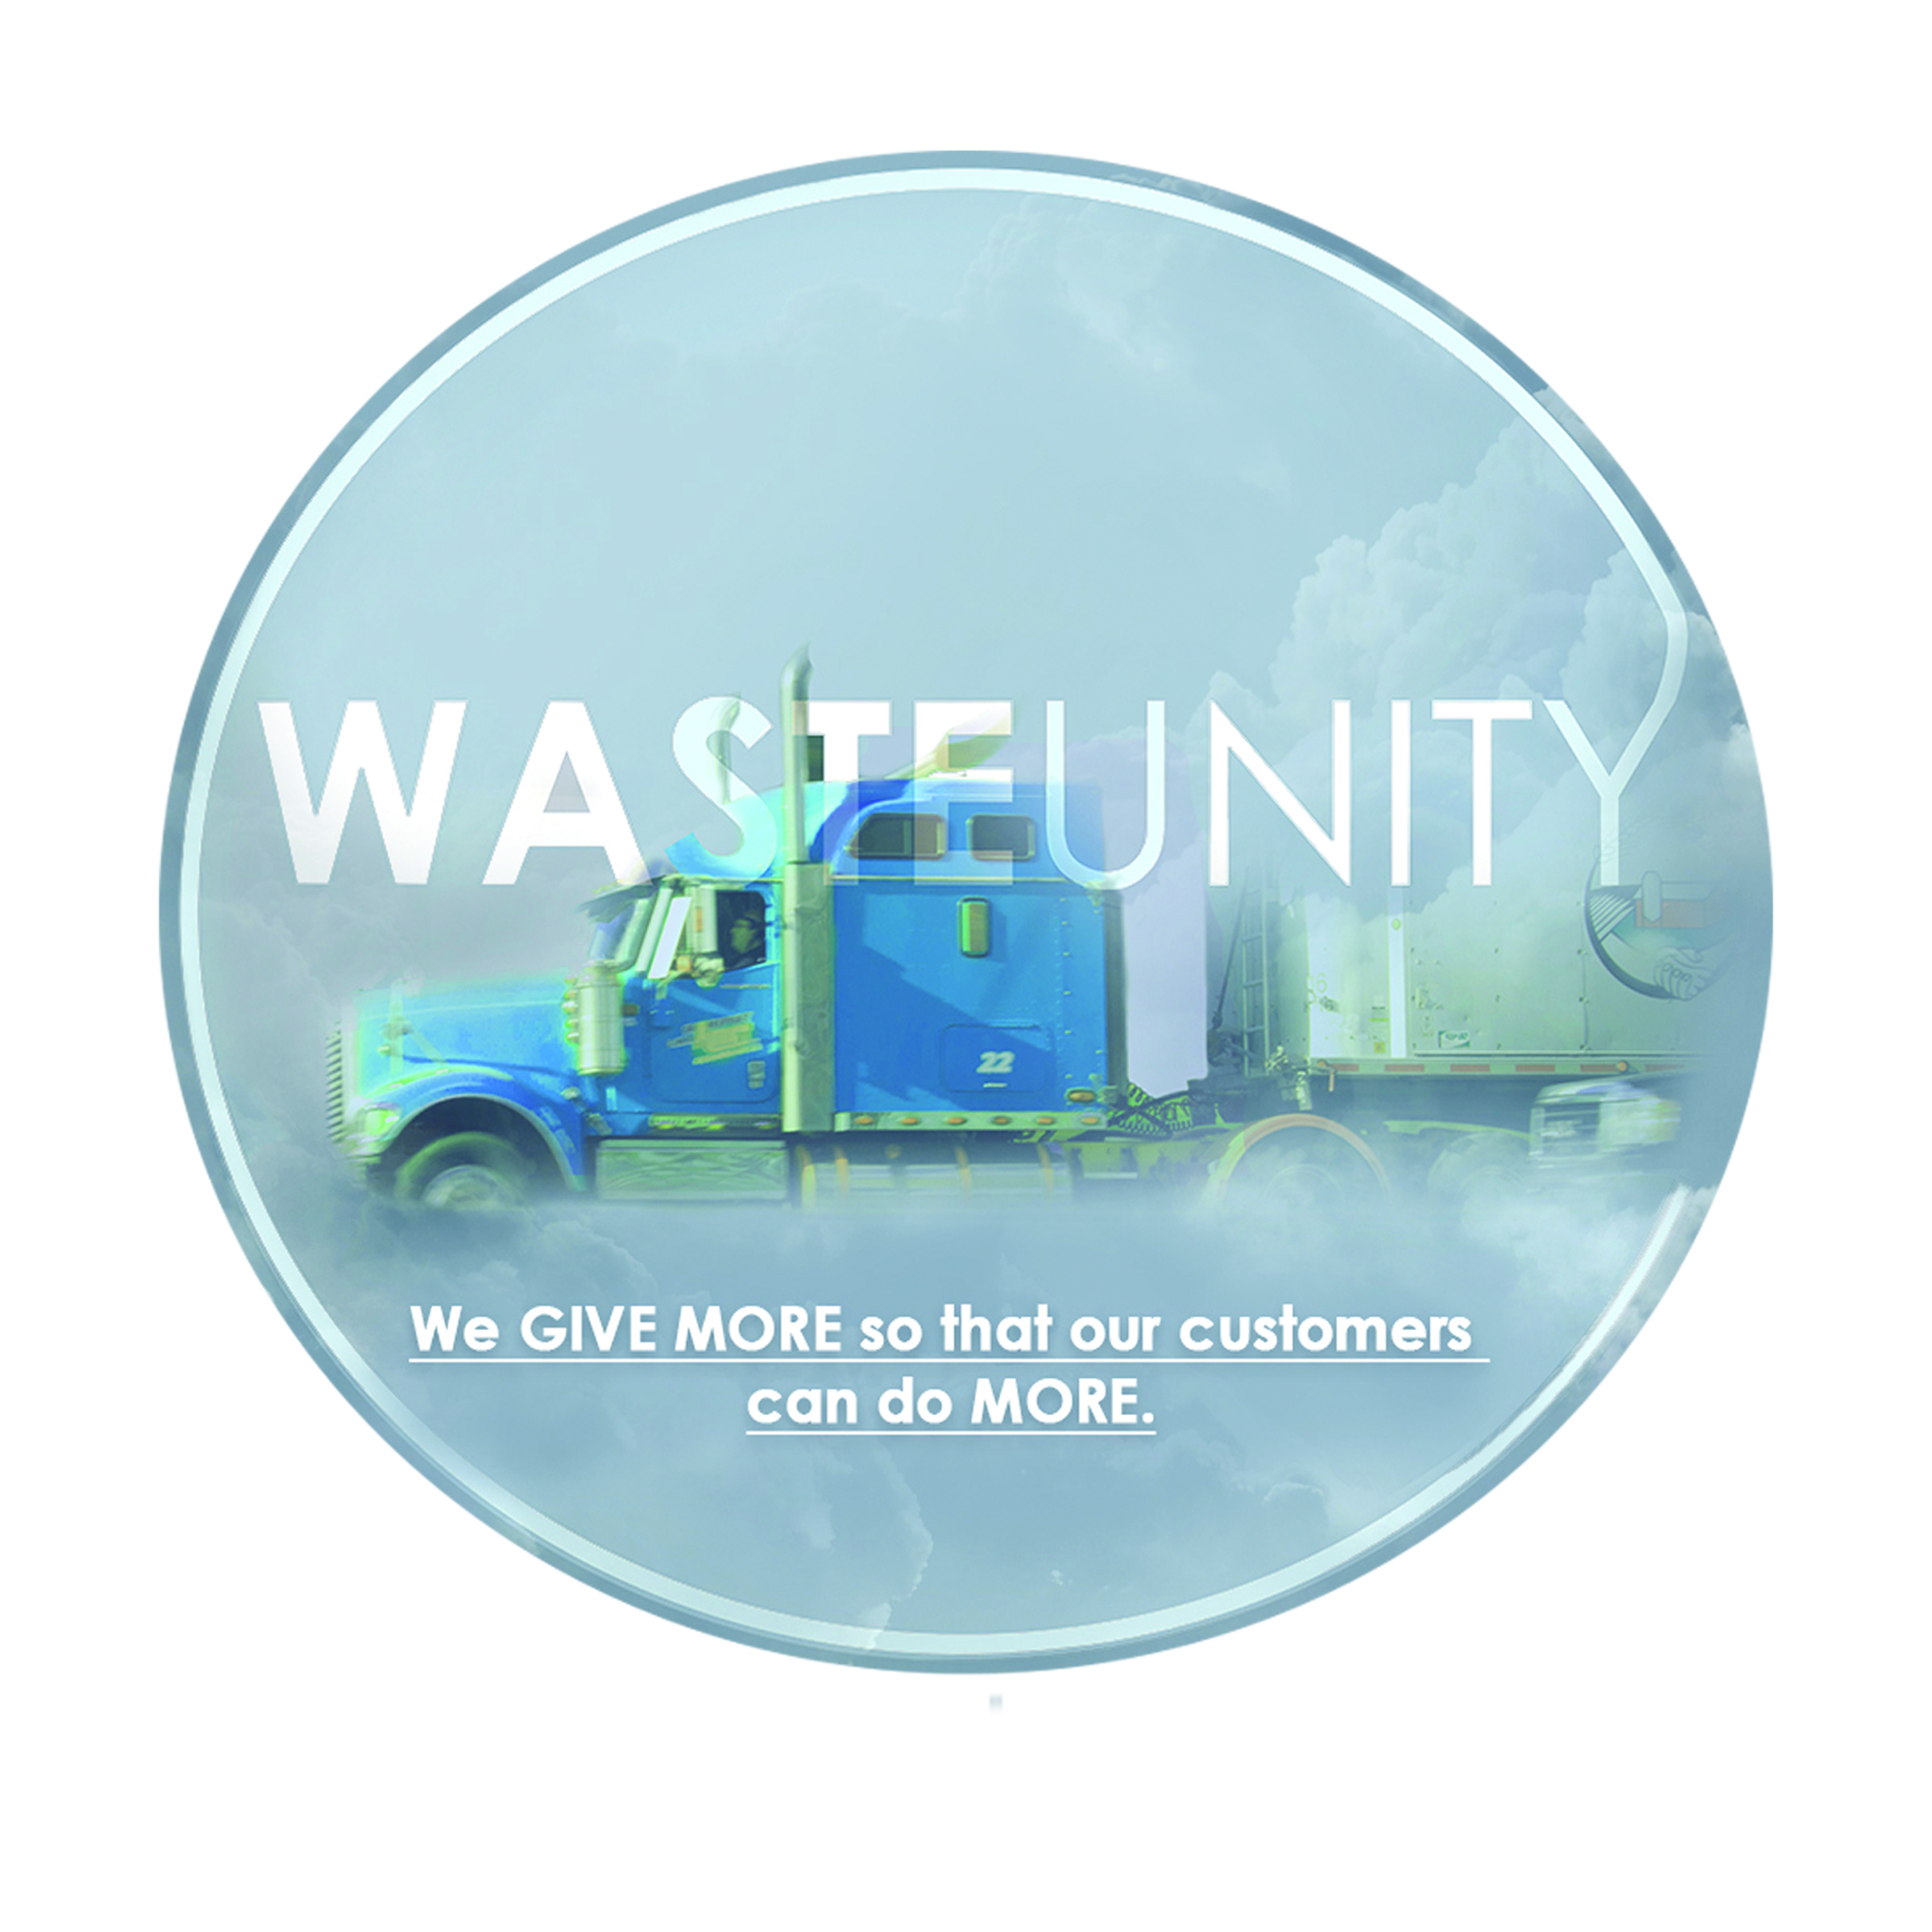 WasteUnity the all-in-one system for the Waste Industry